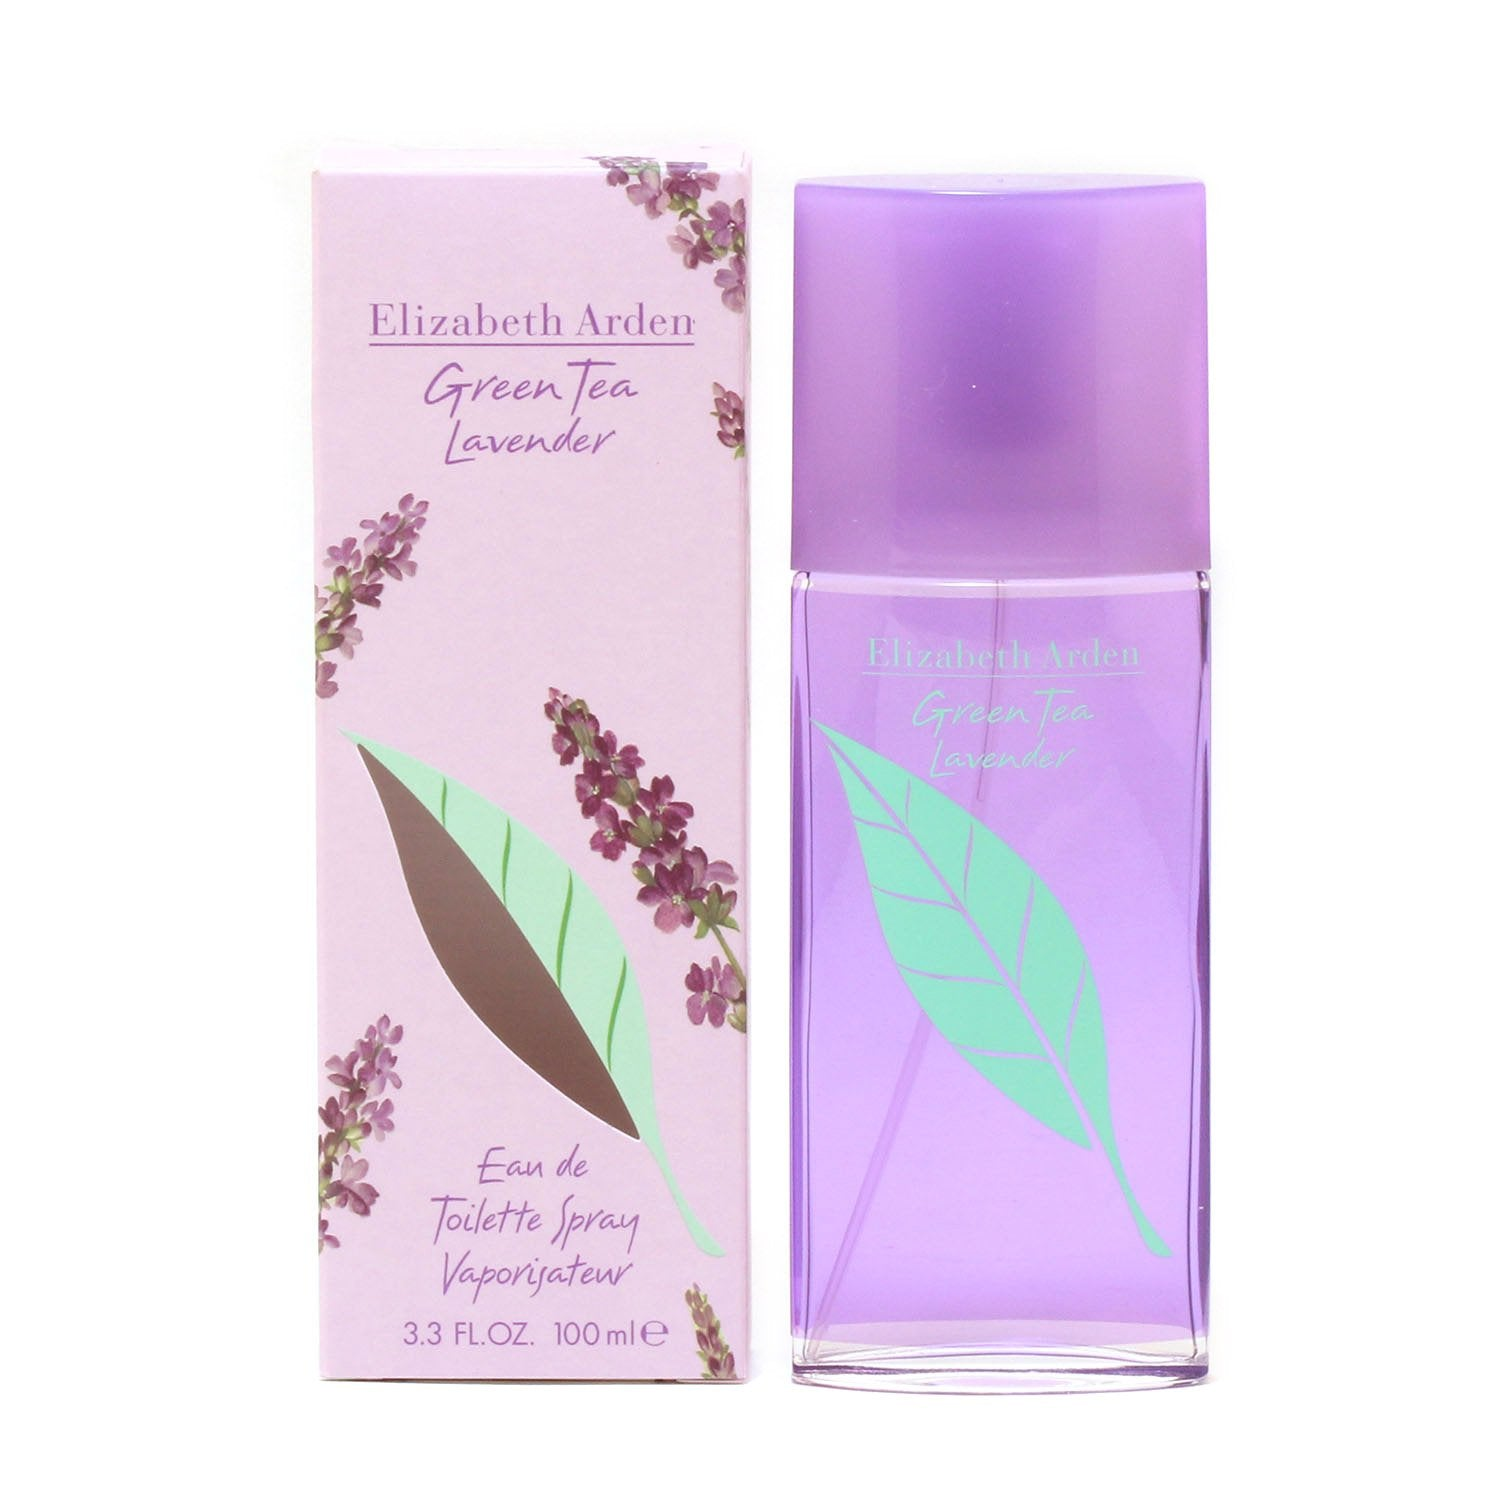 Perfume - GREEN TEA LAVENDER FOR WOMEN BY ELIZABETH ARDEN - EAU DE TOILETTE SPRAY, 3.3 OZ